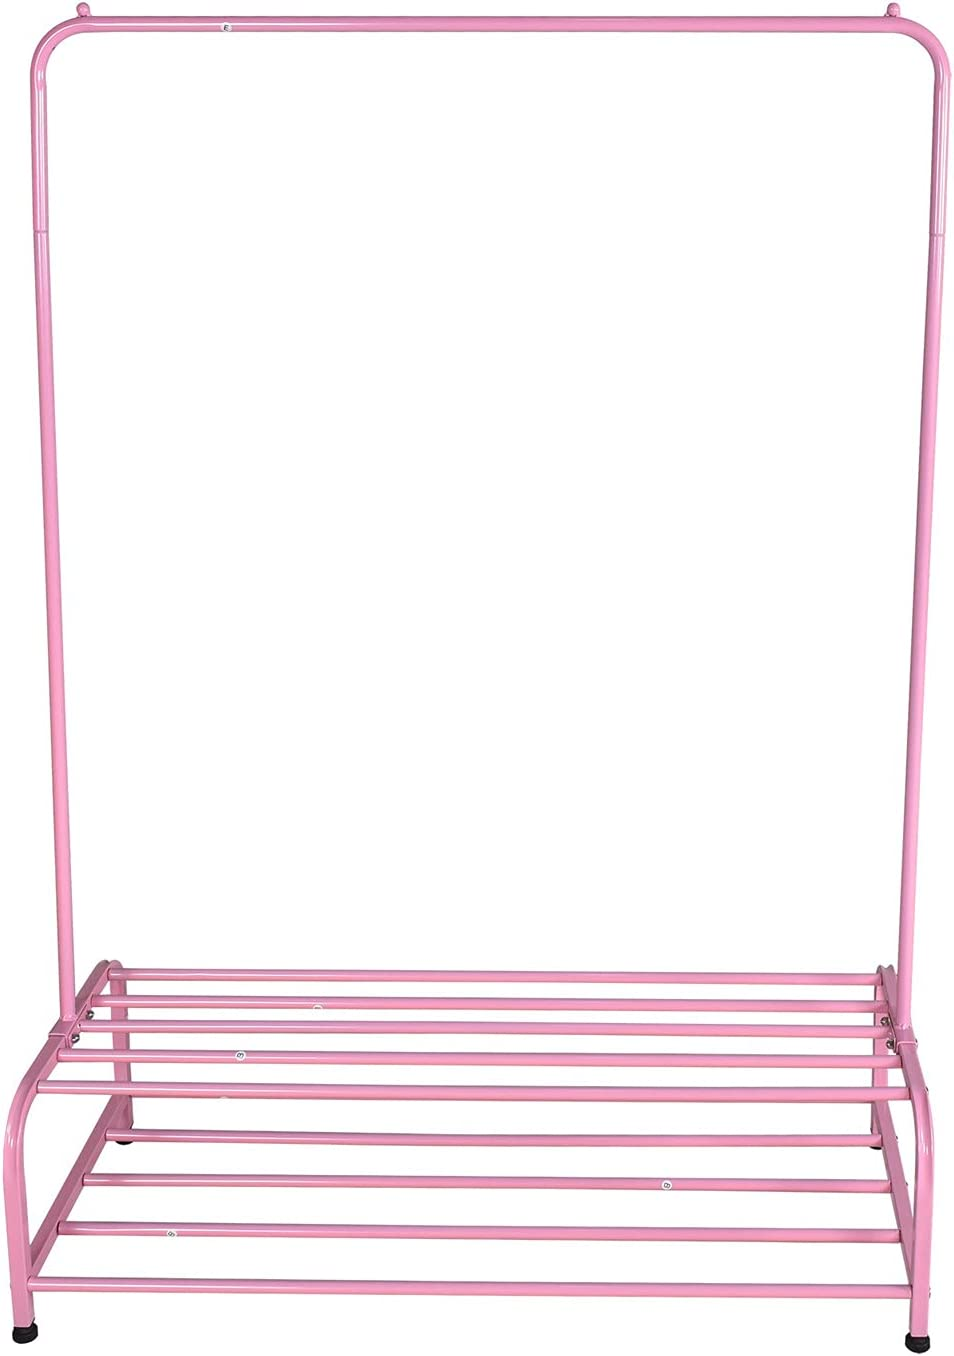 Trlec gt4-ly Clothing 5 Sales of SALE items from new works ☆ popular Garment Rack Metal Han with Cloth Shelves